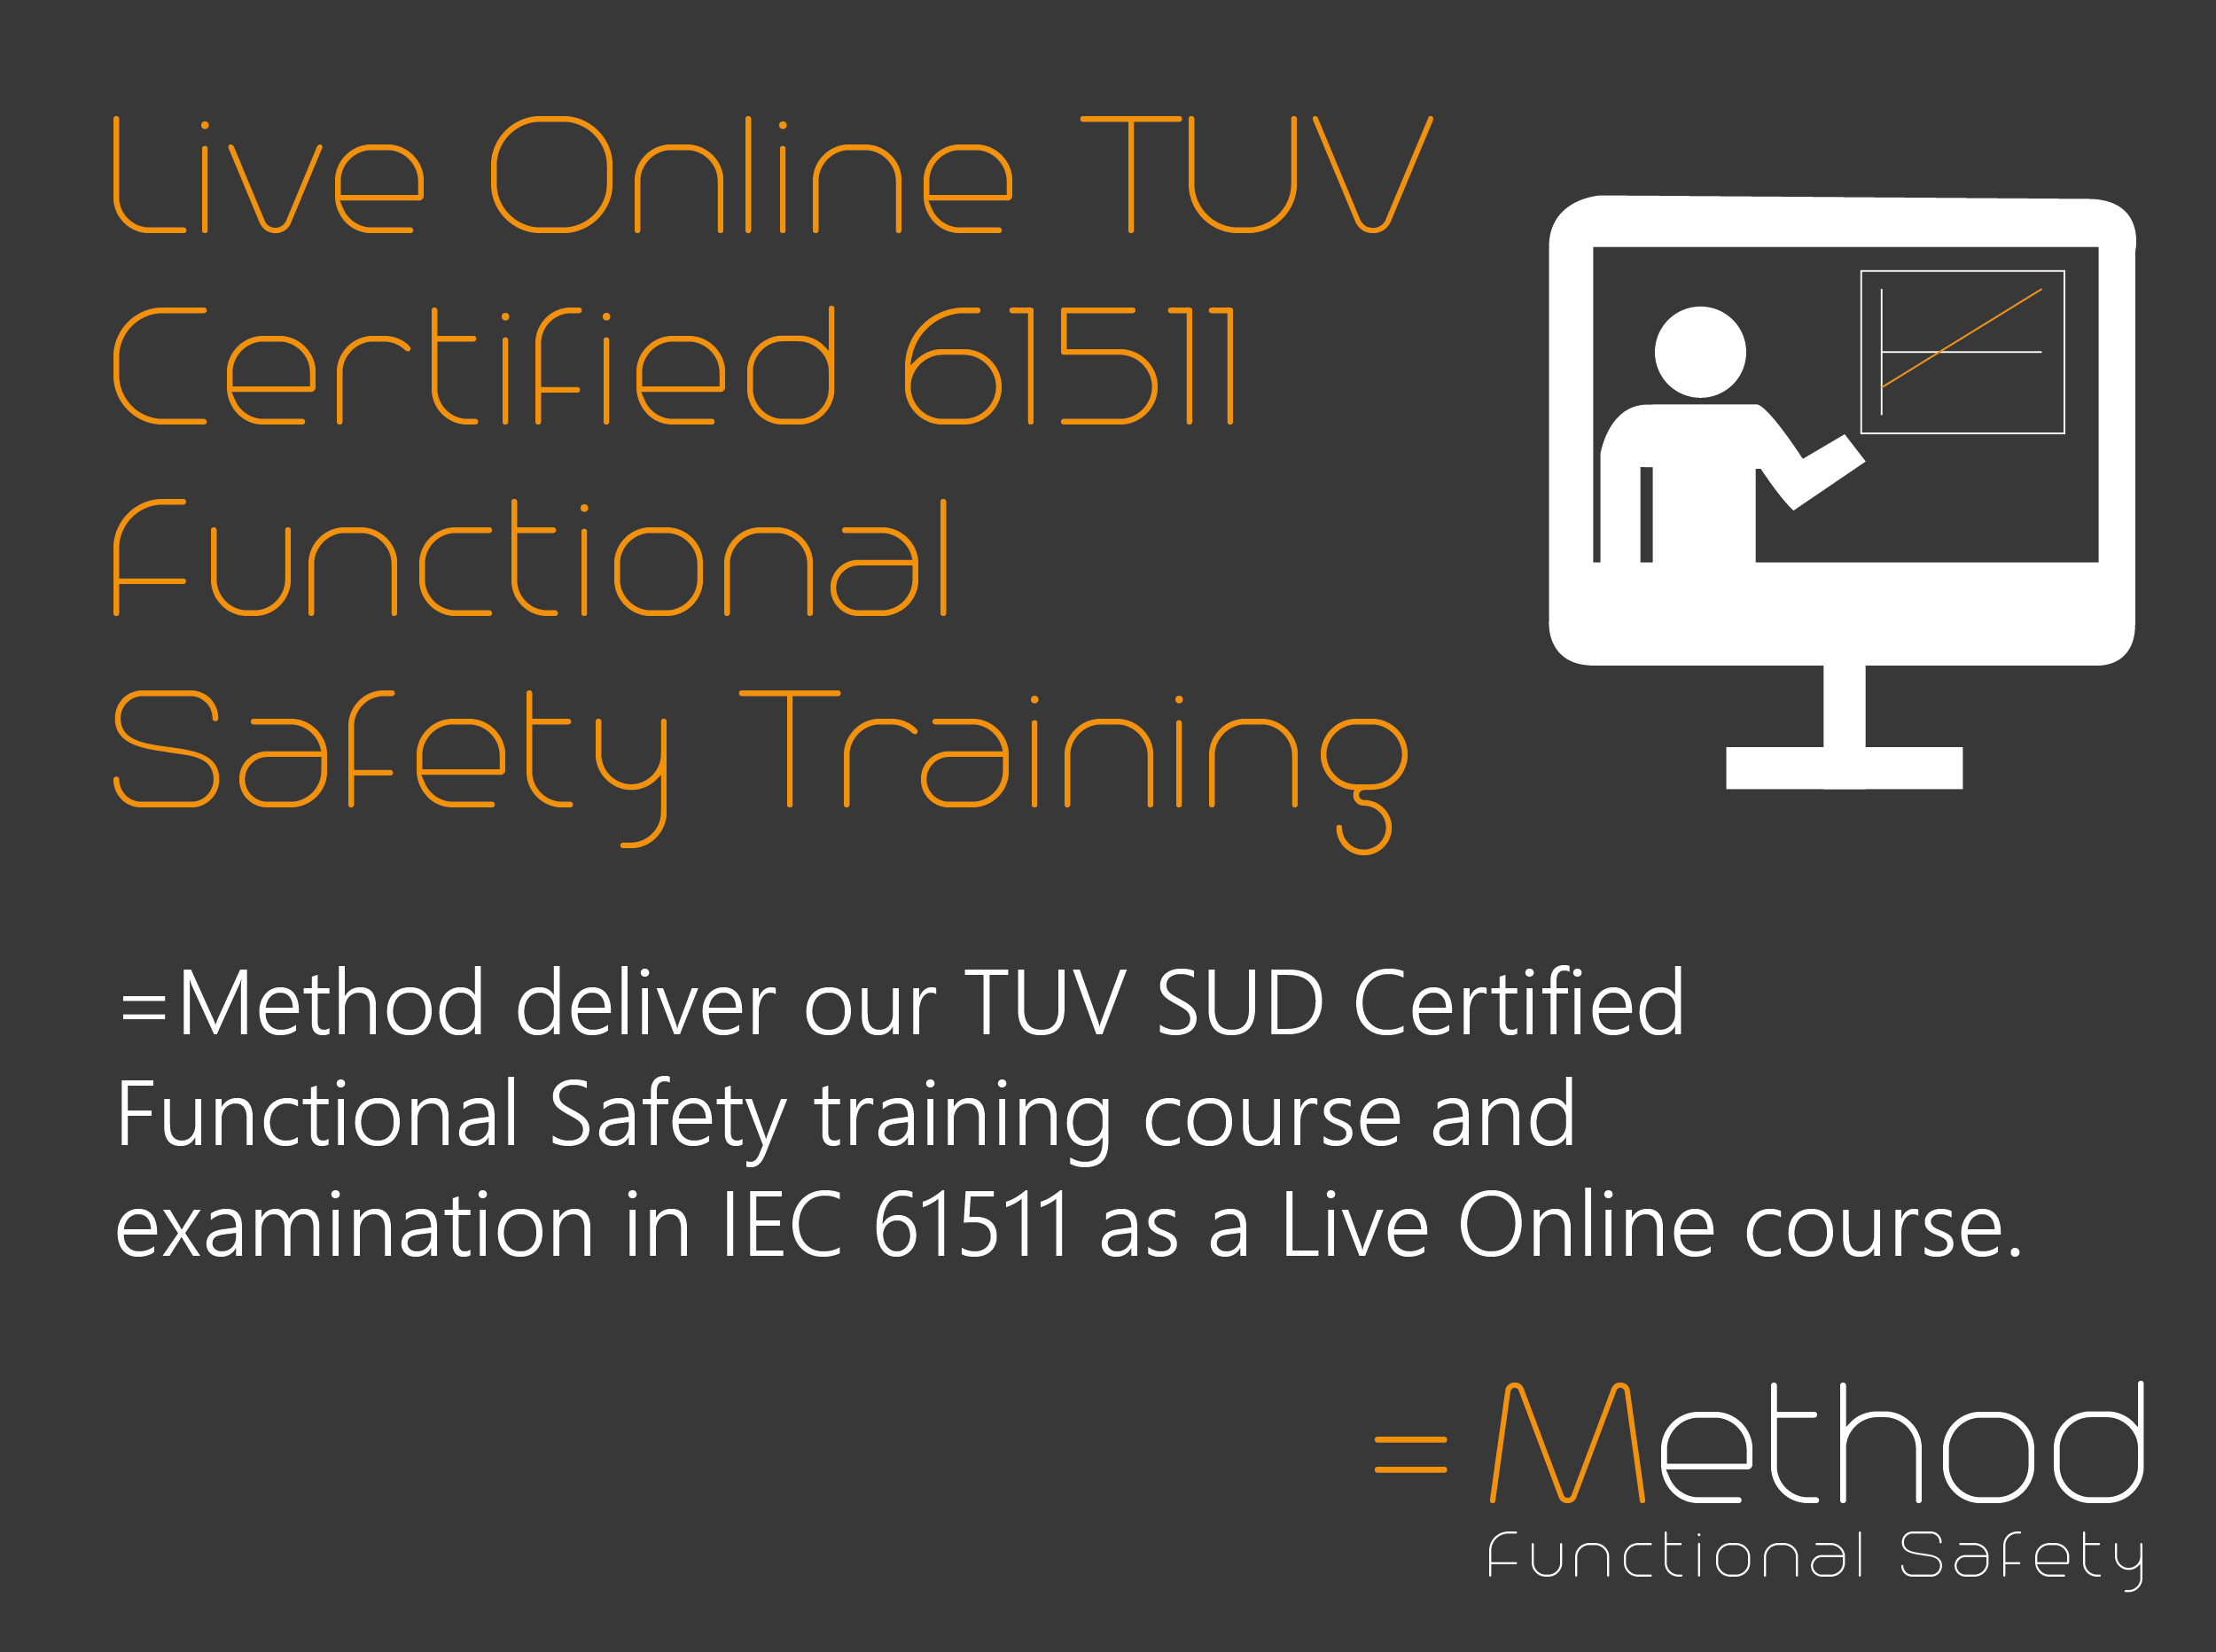 Online TUV Certified Functional Safety Training in IEC 61511